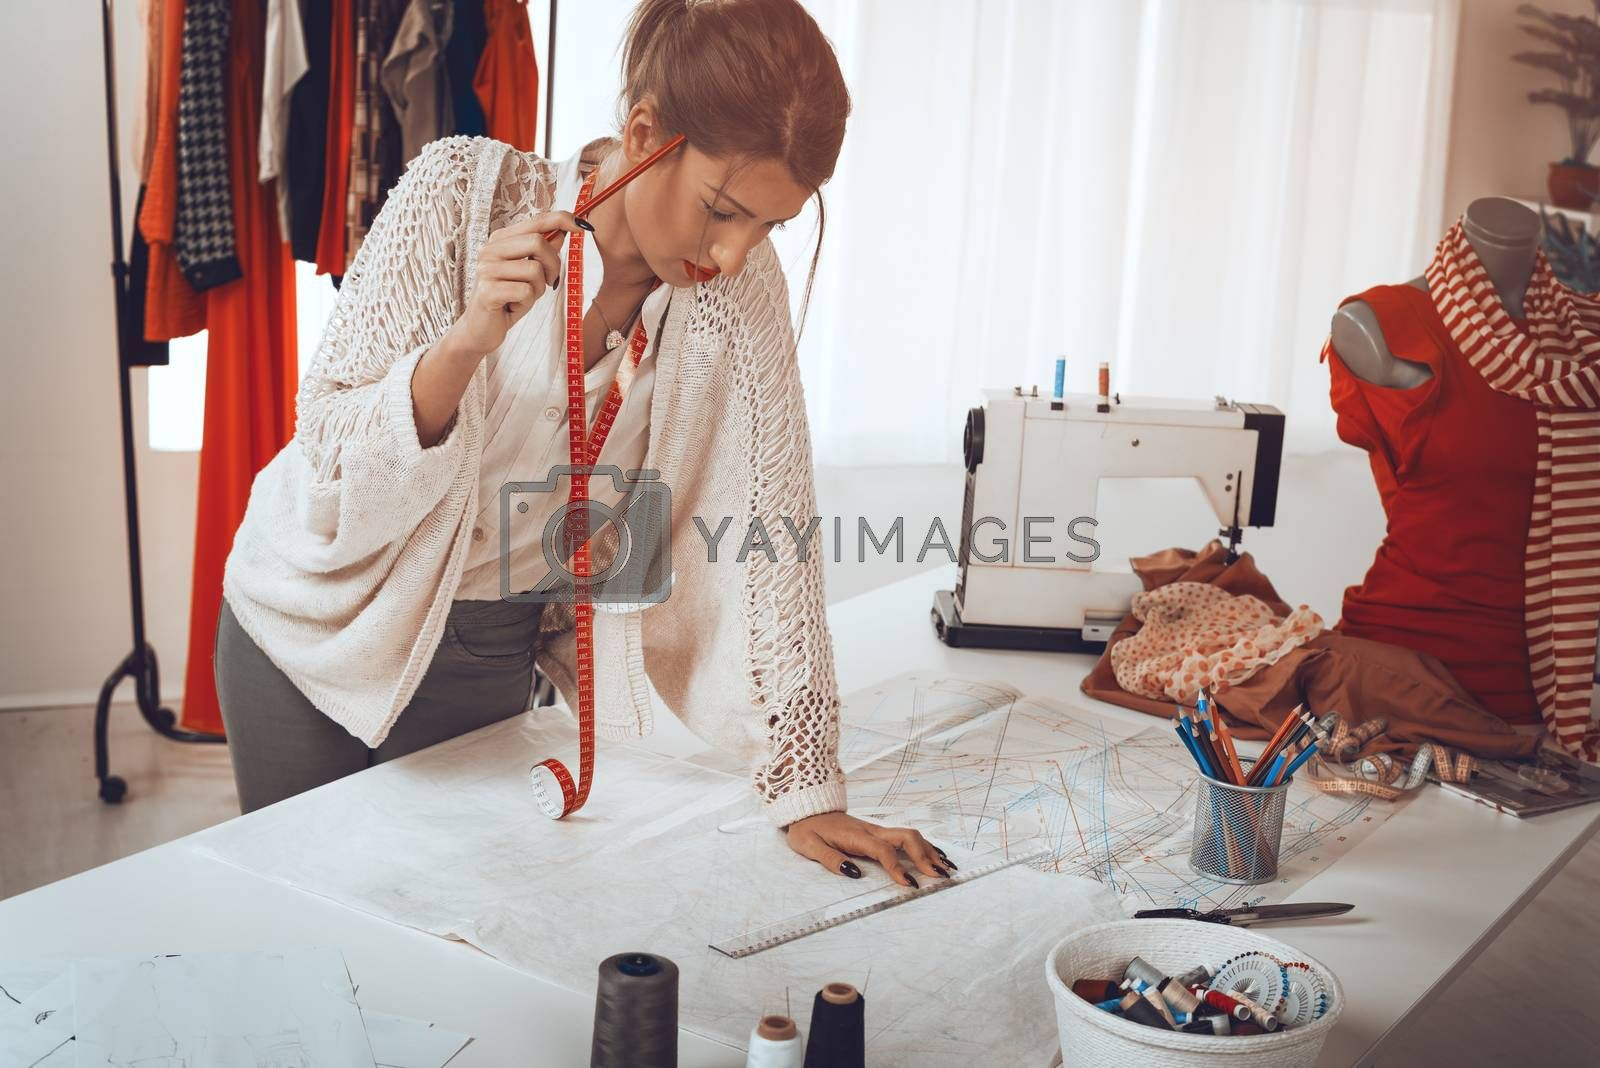 Young pensive female fashion designer with tape measure draped over the neck drawing on sewing pattern with a ruler.